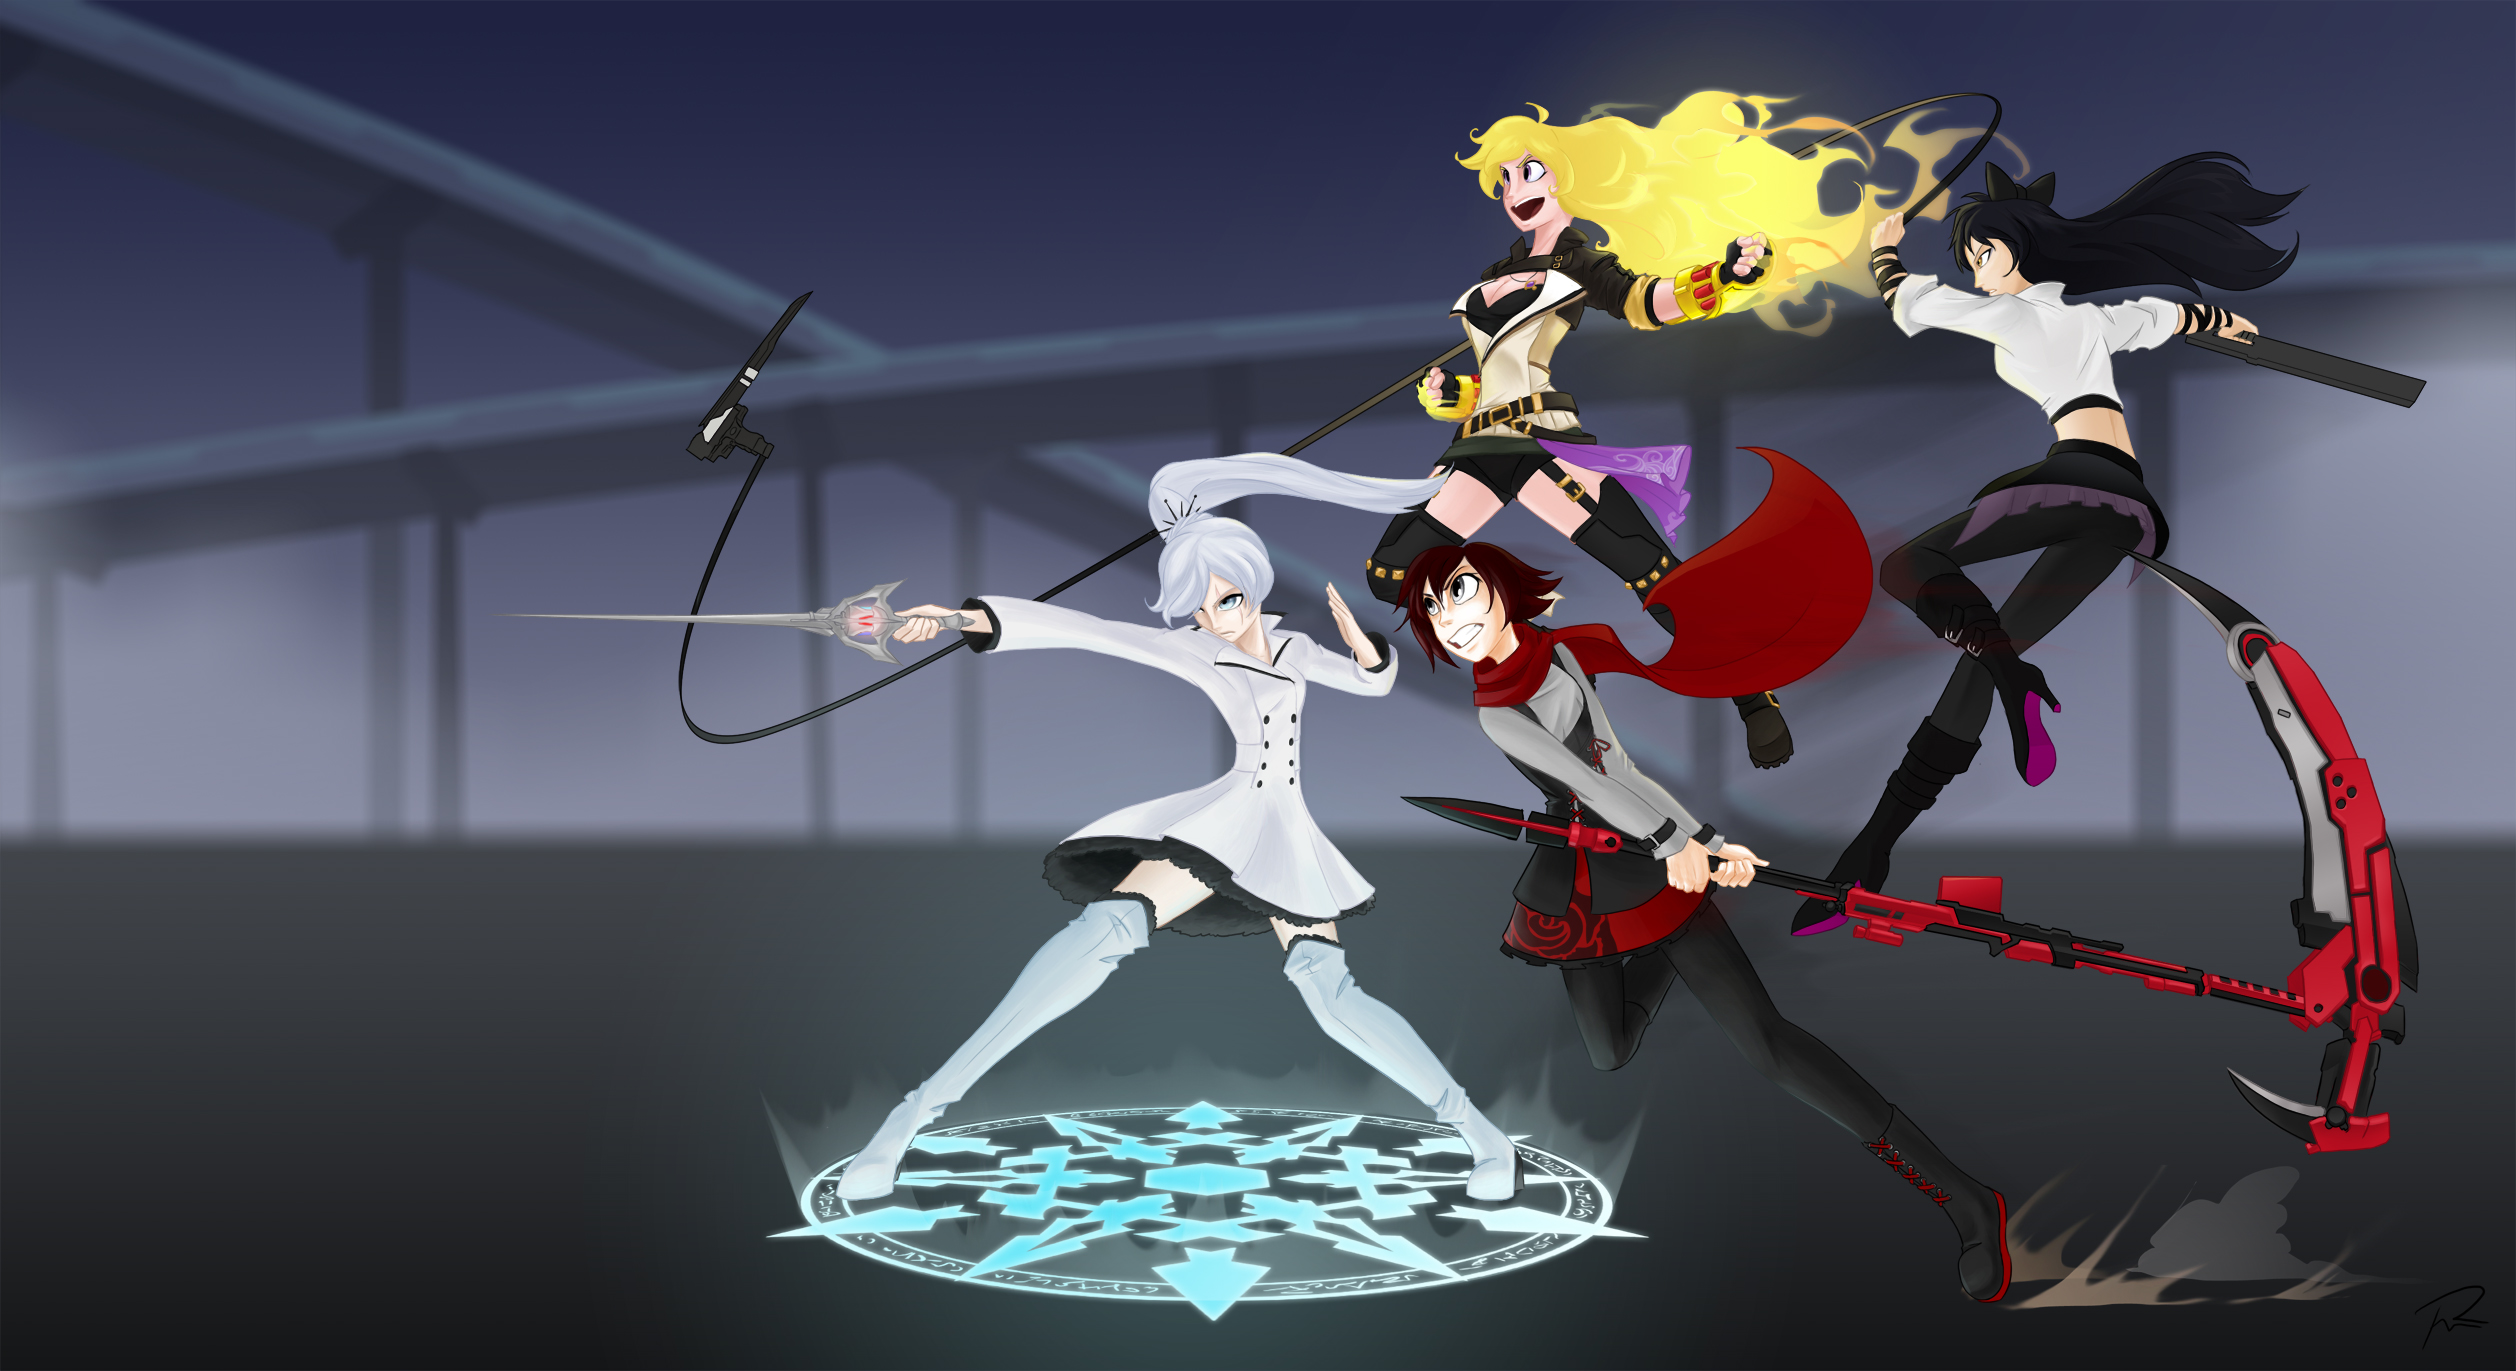 Alternate costume rwby charges forward by didj on cosplay rwby vol 4